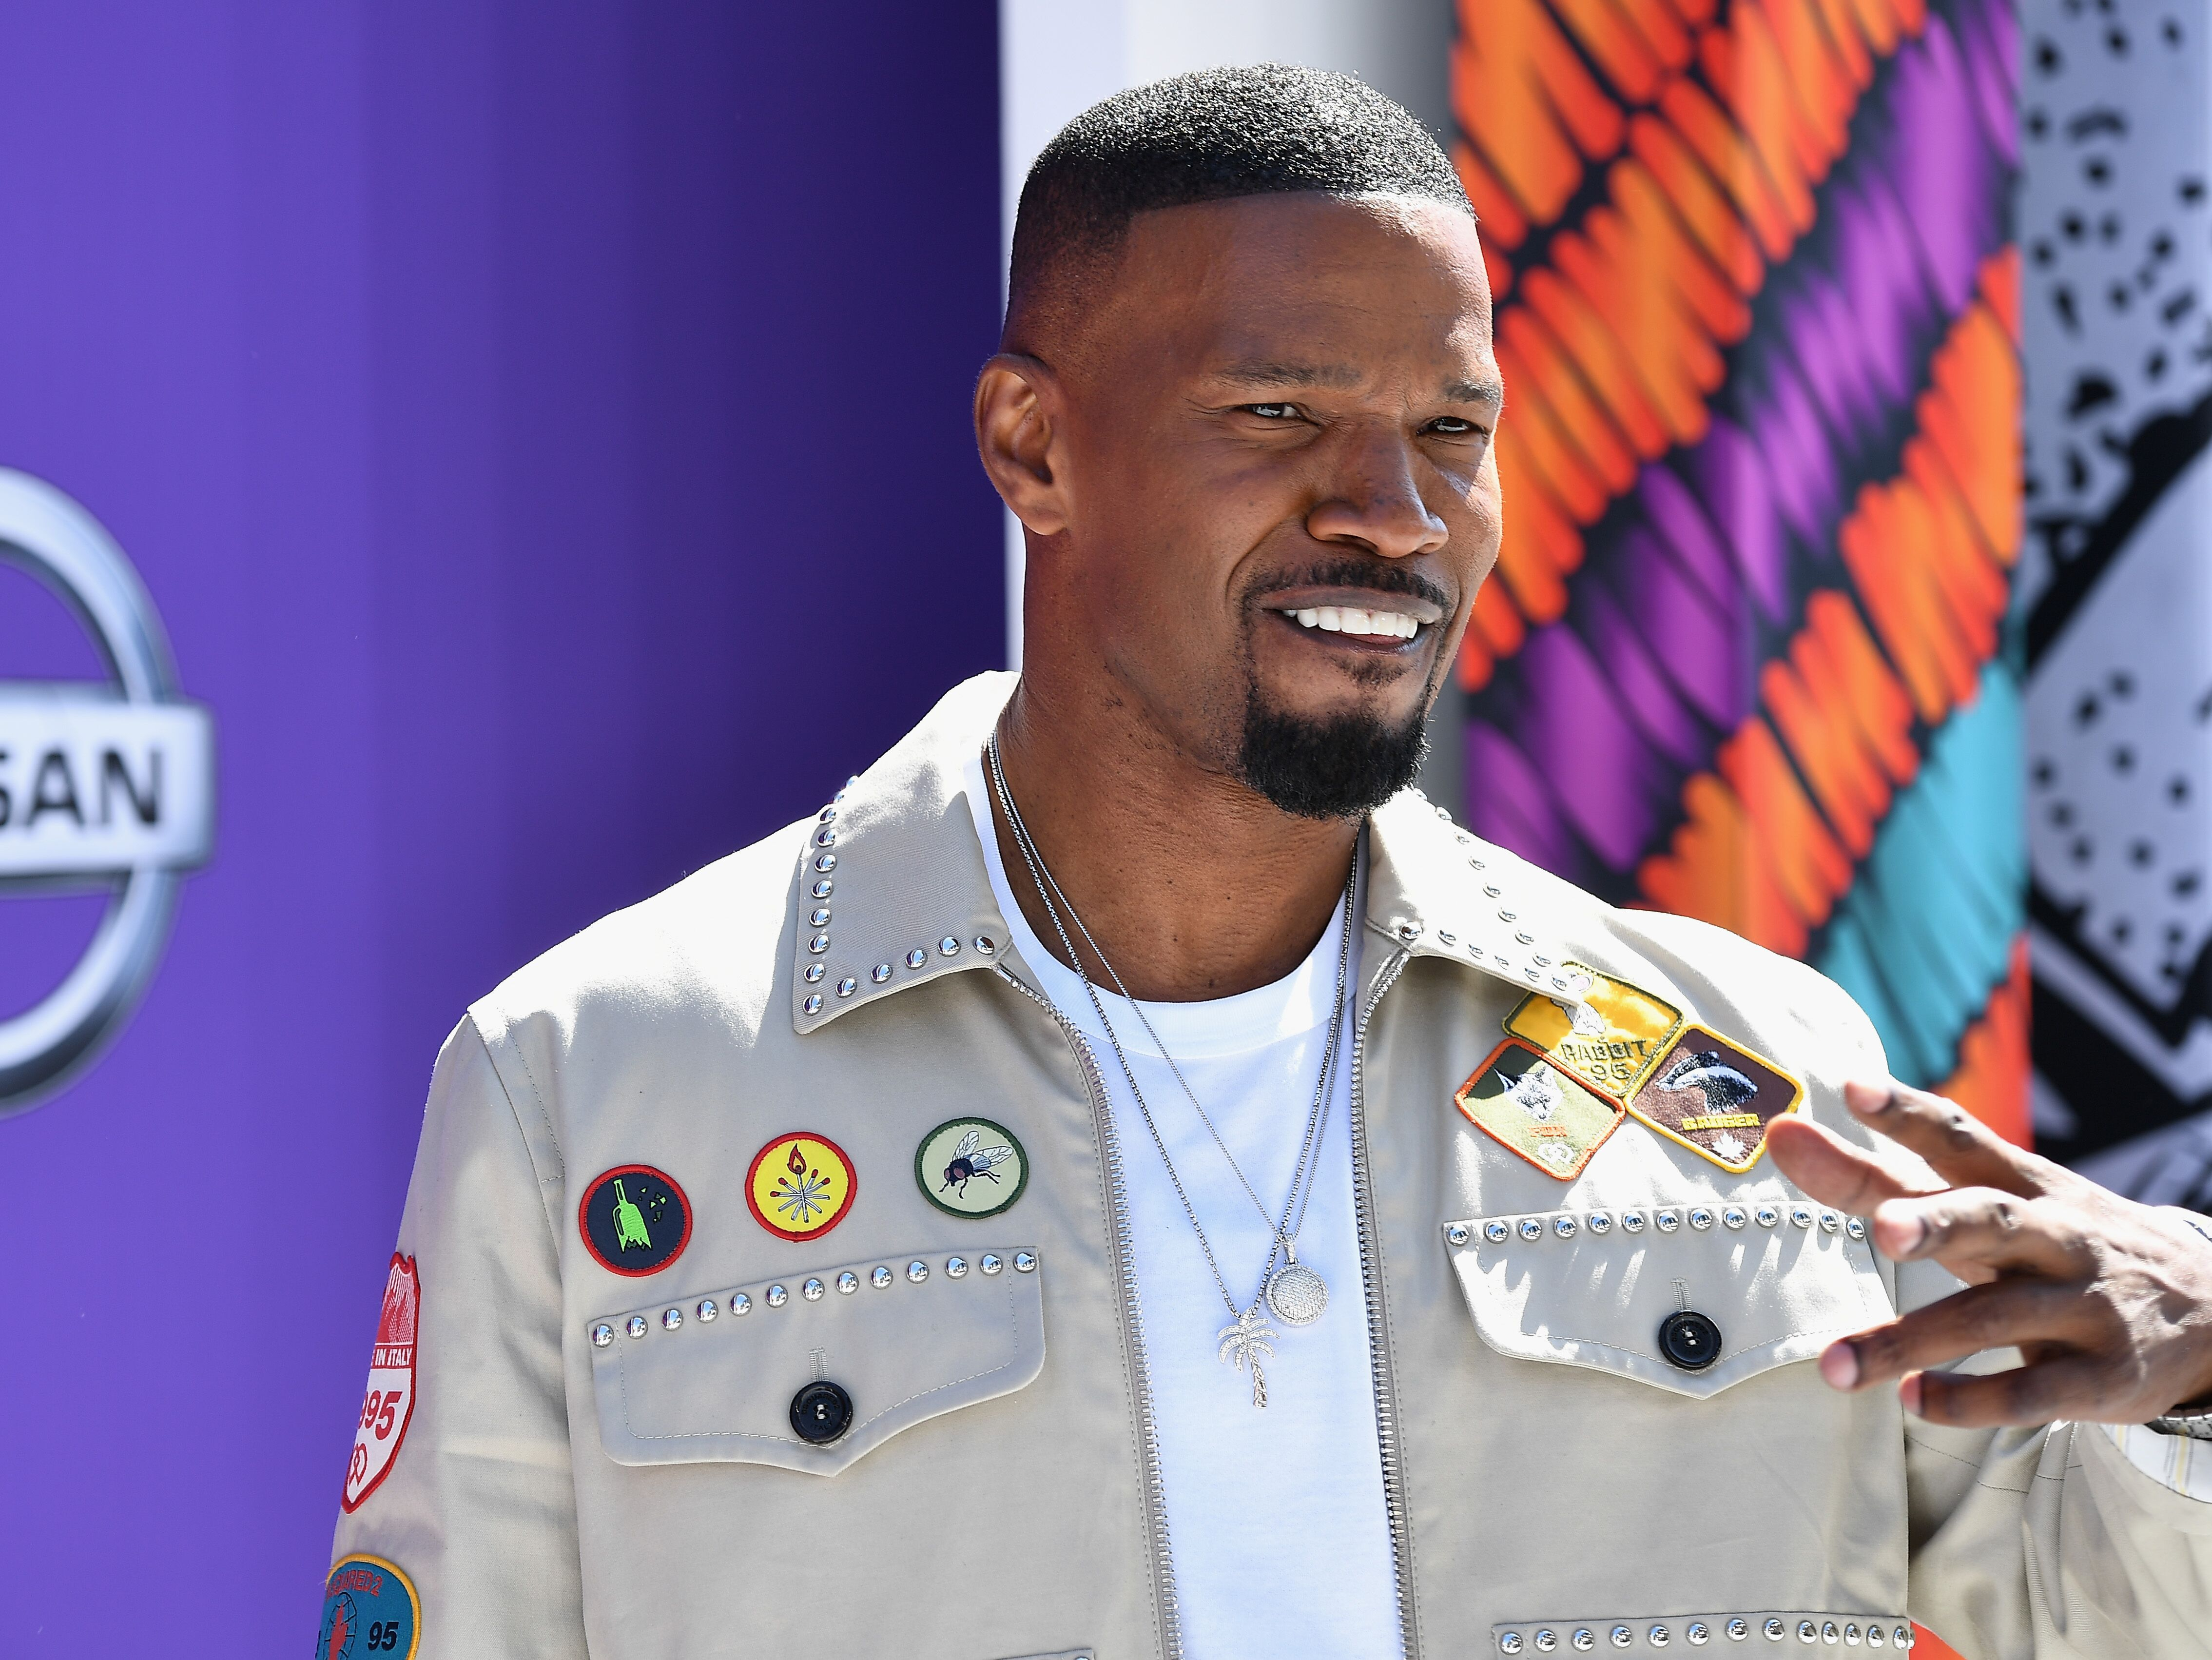 Jamie Foxx attends the 2018 BET Awards at Microsoft Theater | Photo: Getty Images